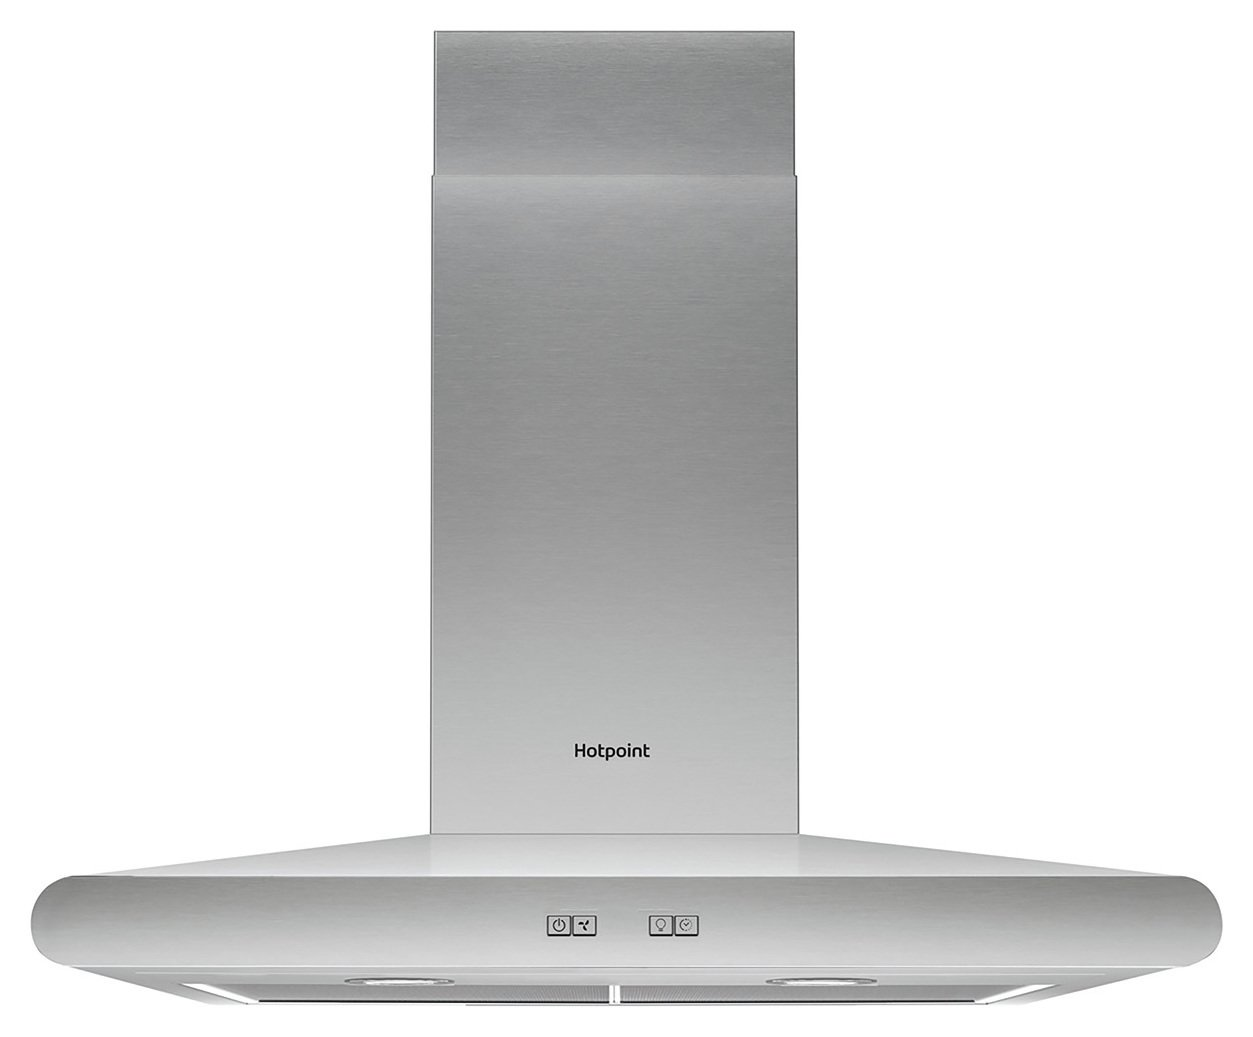 Hotpoint PHC6.7FLBIX 60cm Cooker Hood - Stainless Steel from Hotpoint